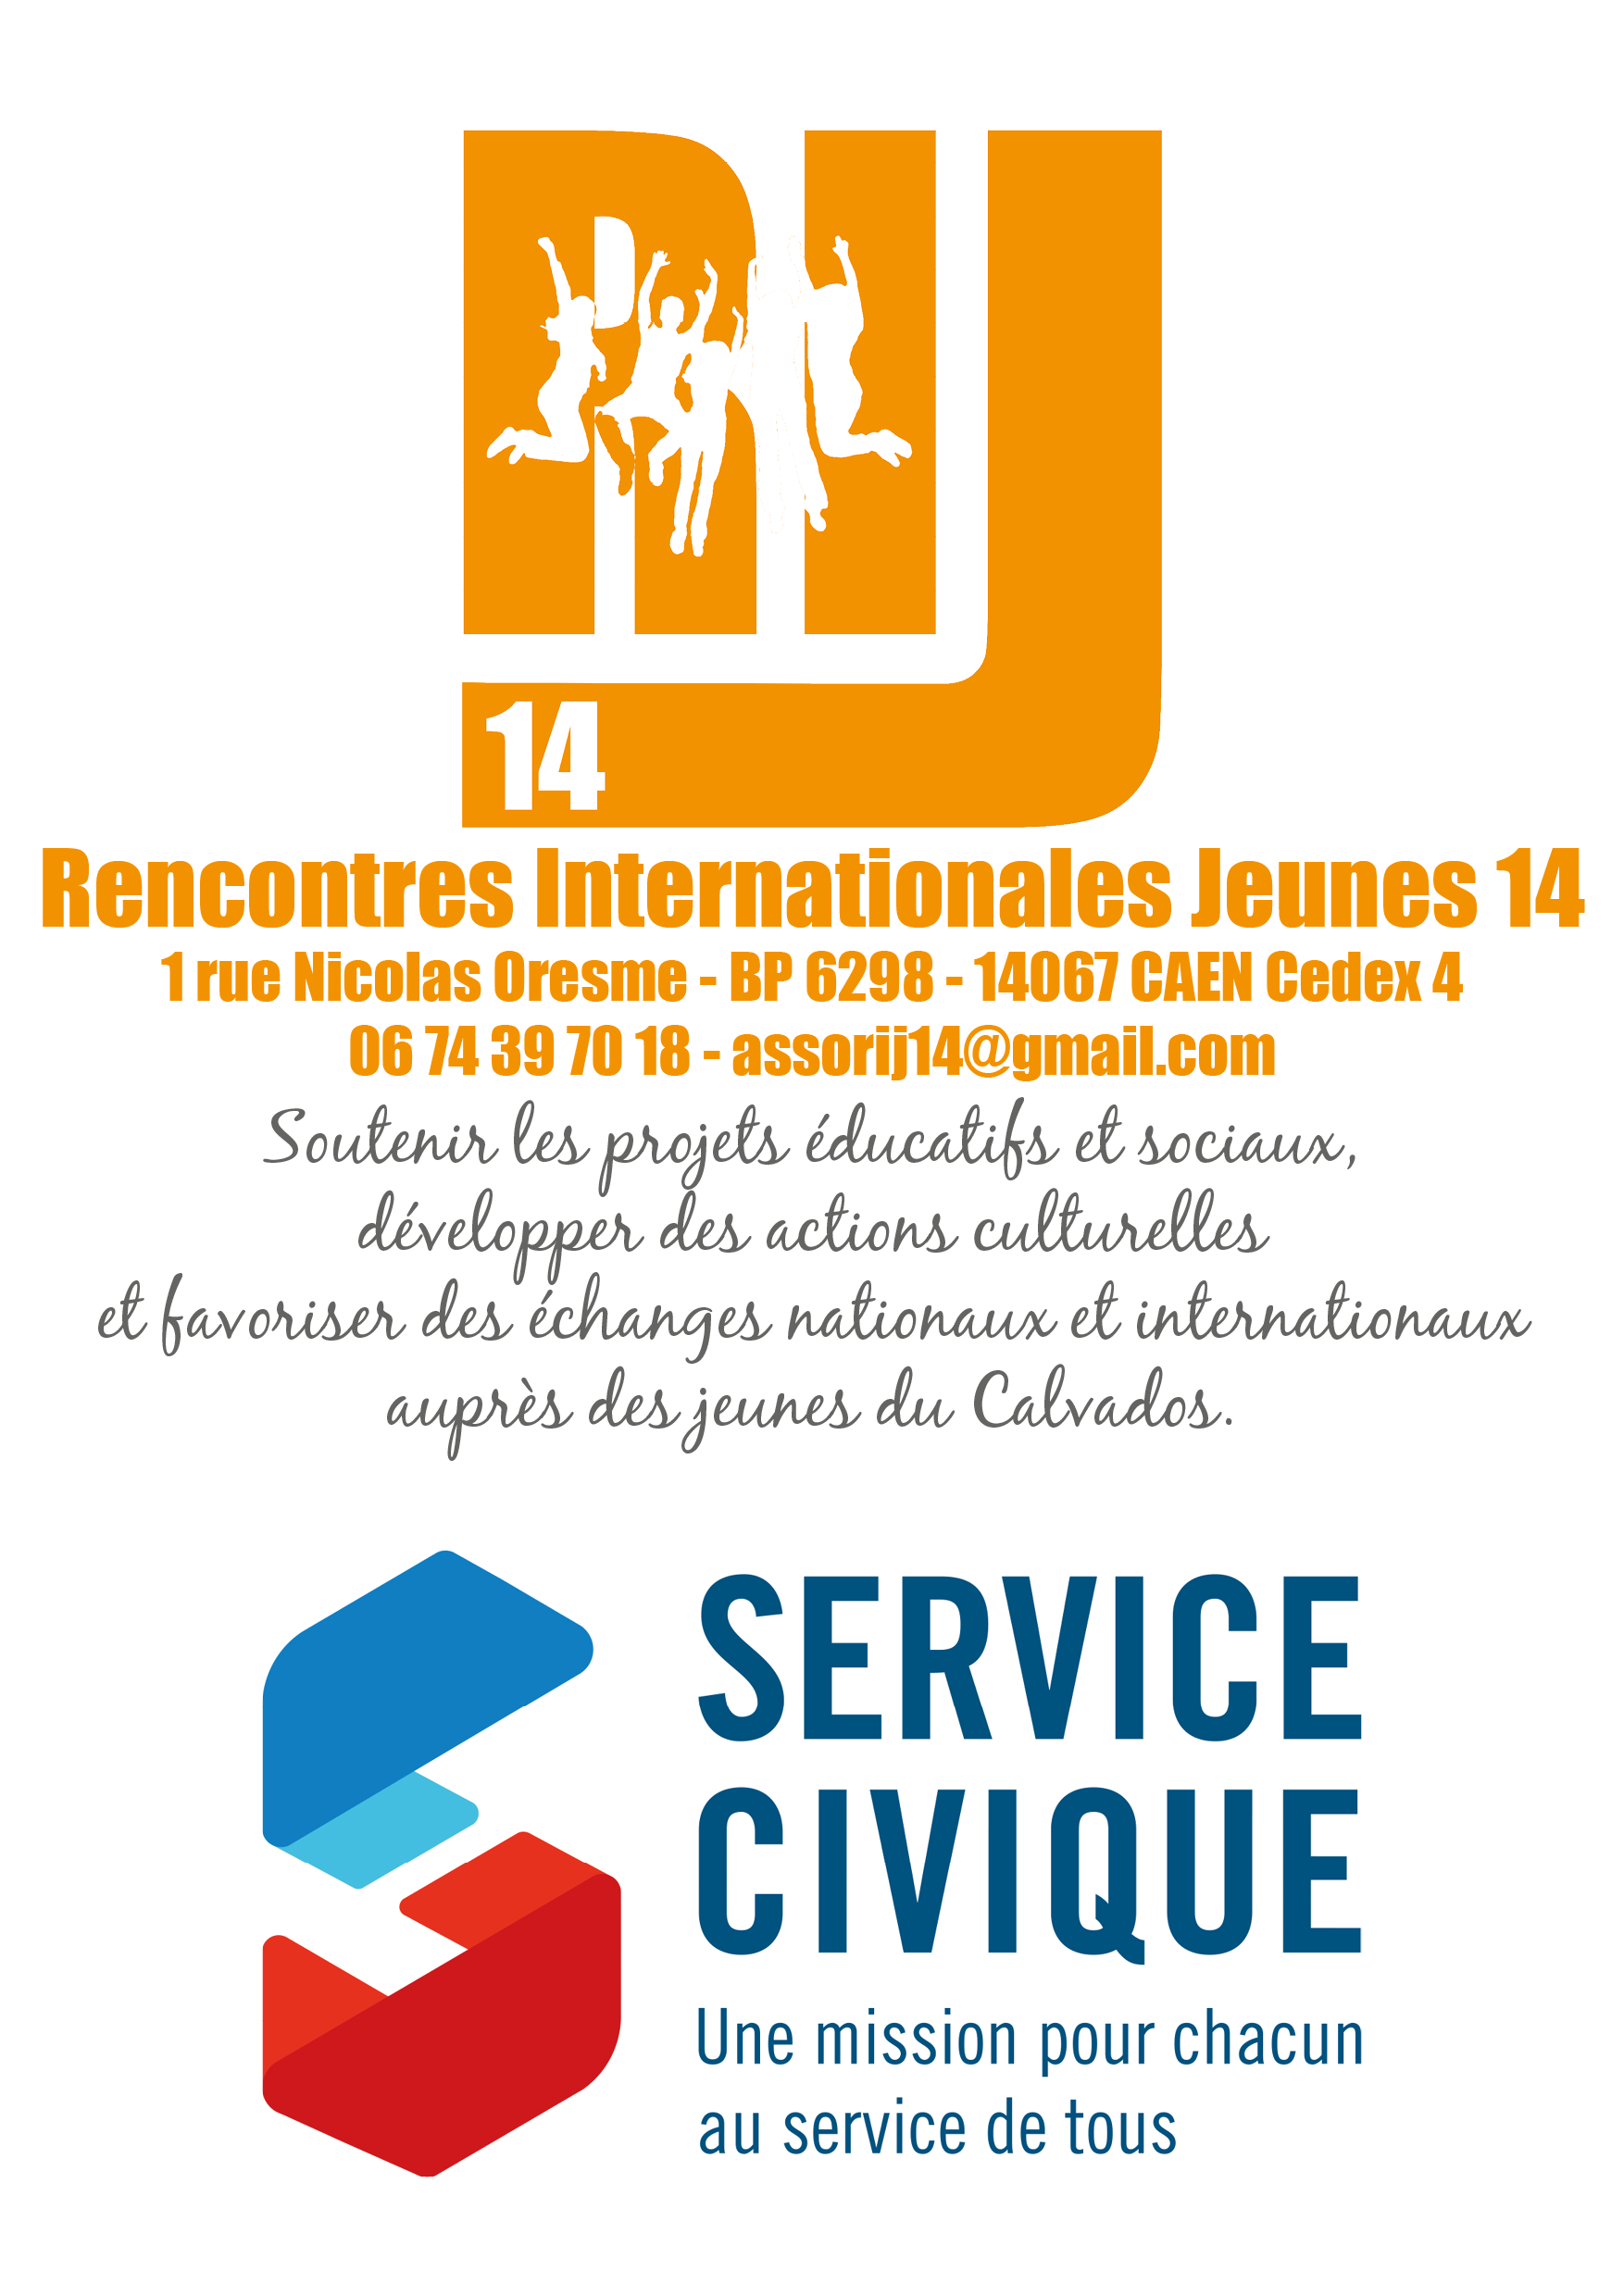 RIJ14 service civique